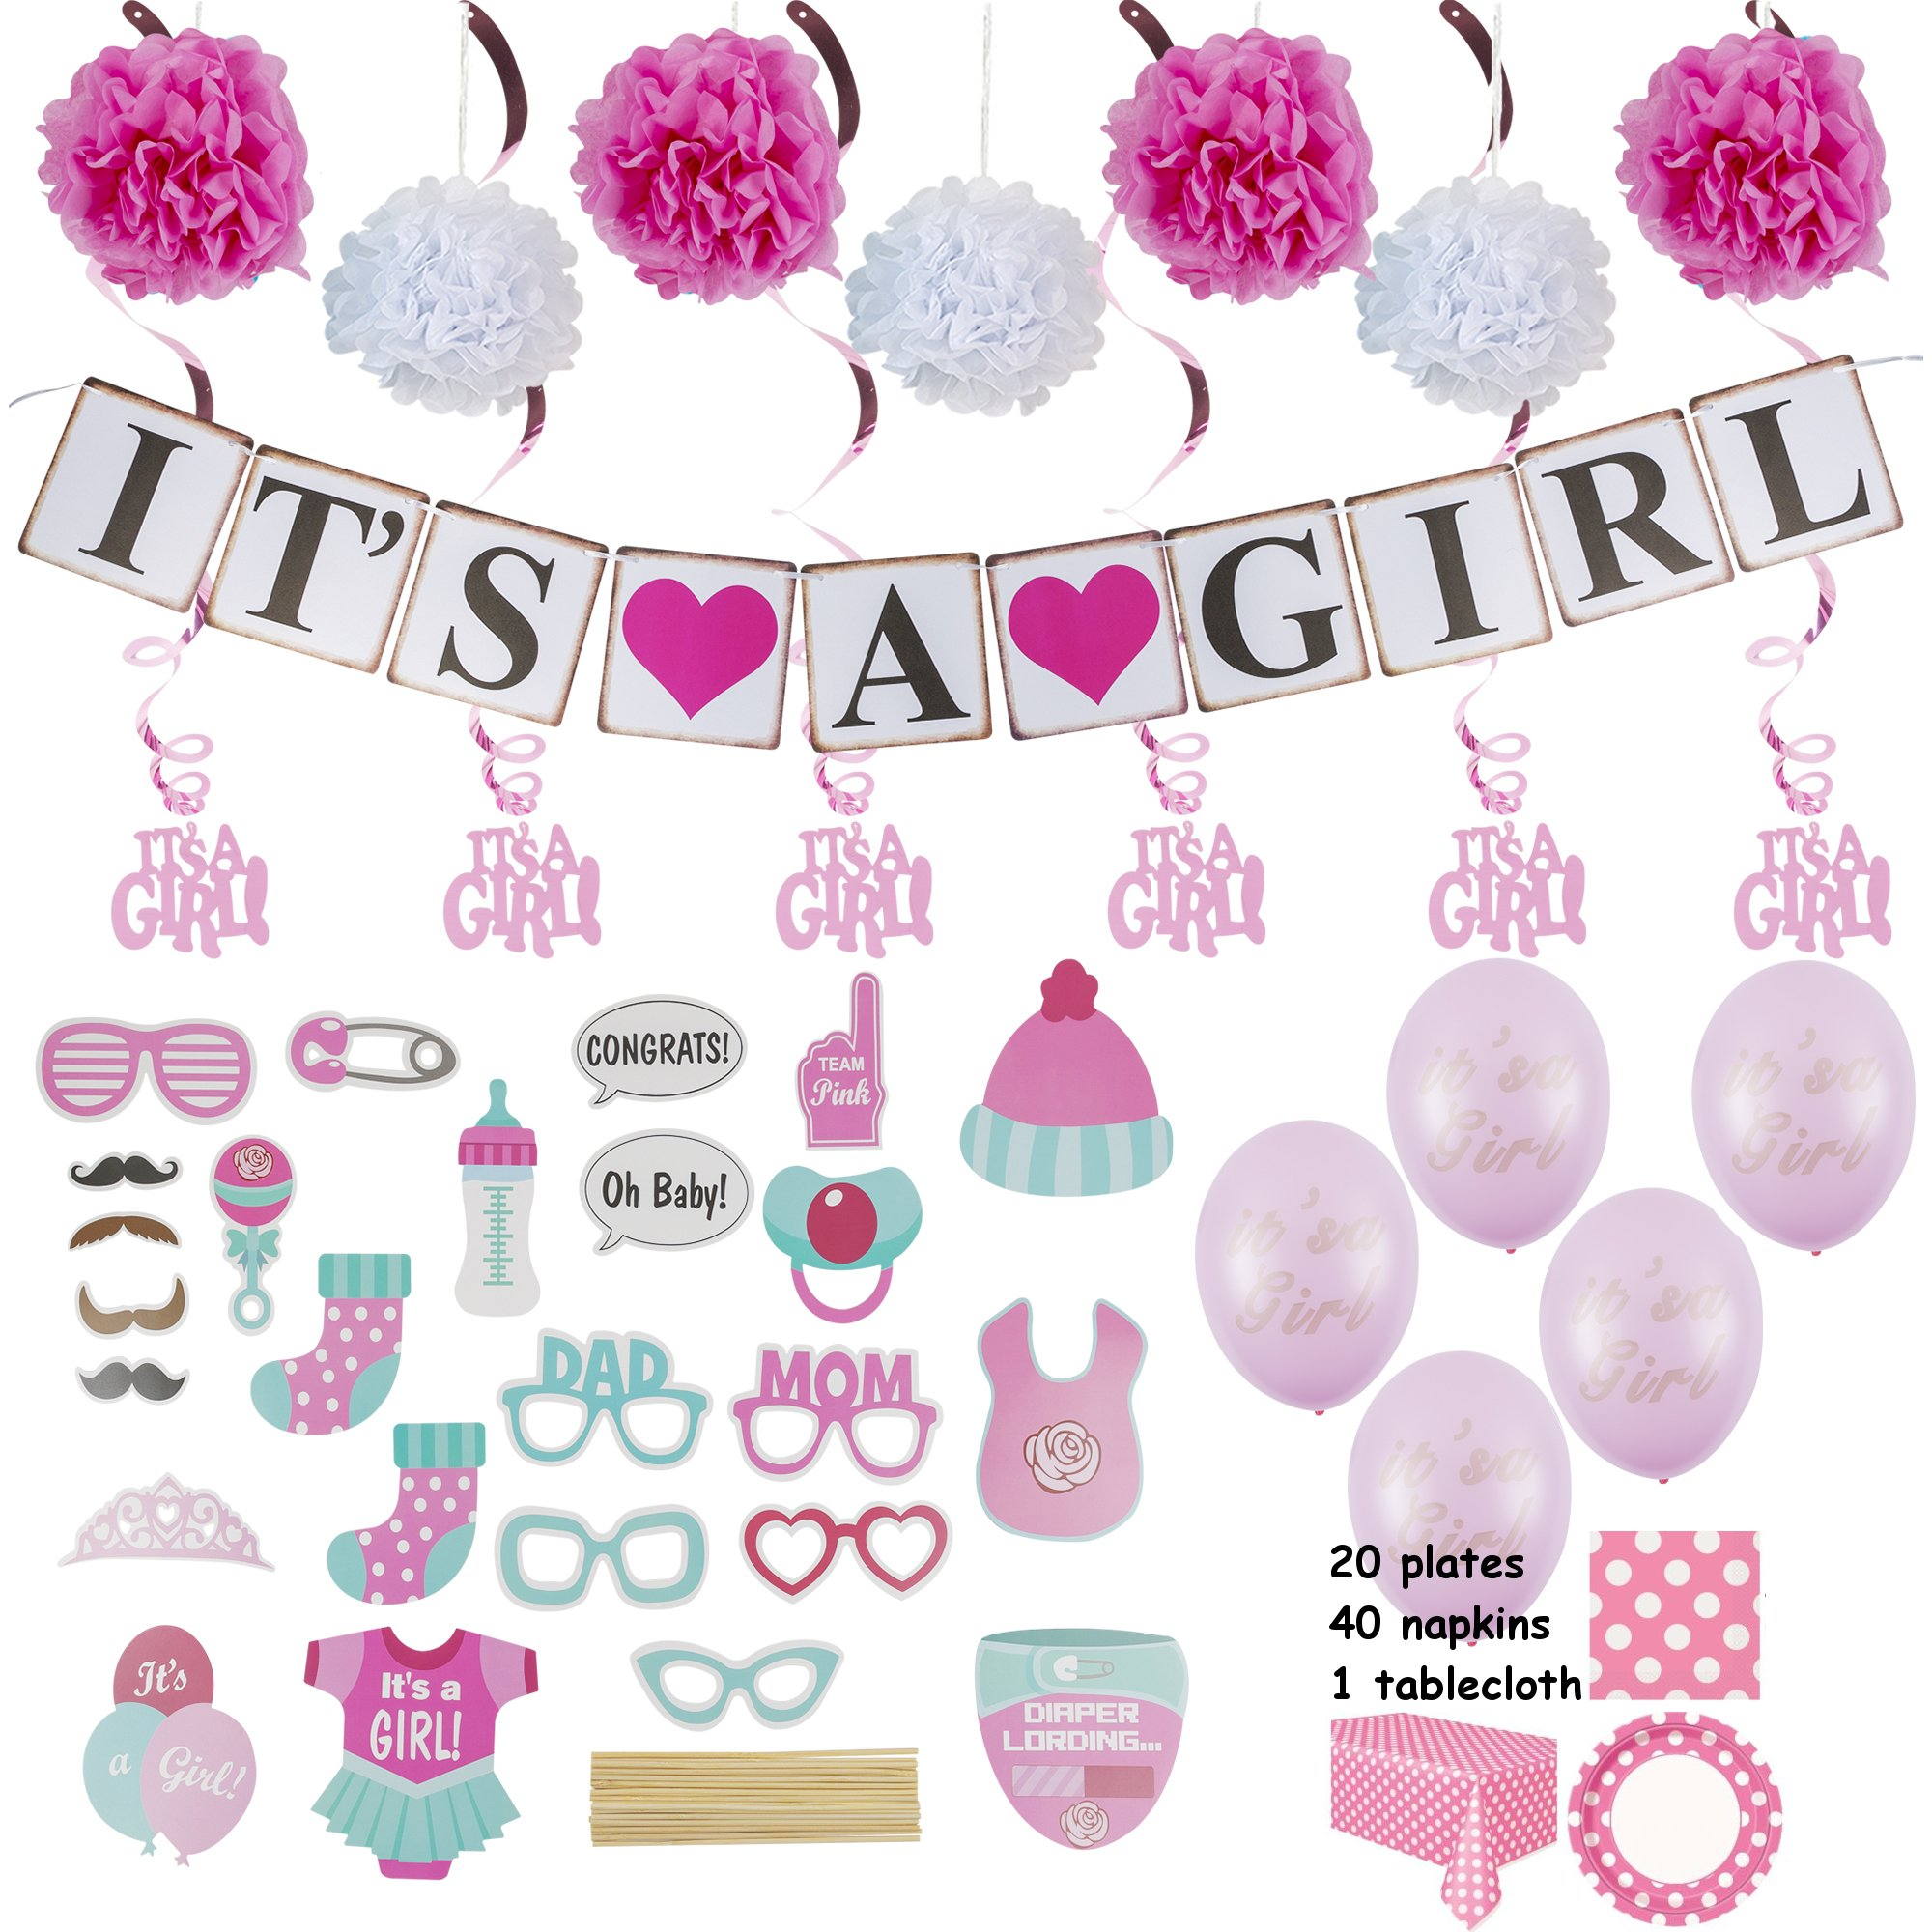 Baby Shower Decorations for a Girl :: Over 100 Pieces in Kit :: Elegant Pink Décor with Hanging Banner, Balloons, Props, Flower Pom Poms, Swirlers, Napkins, Plates & Table Cover